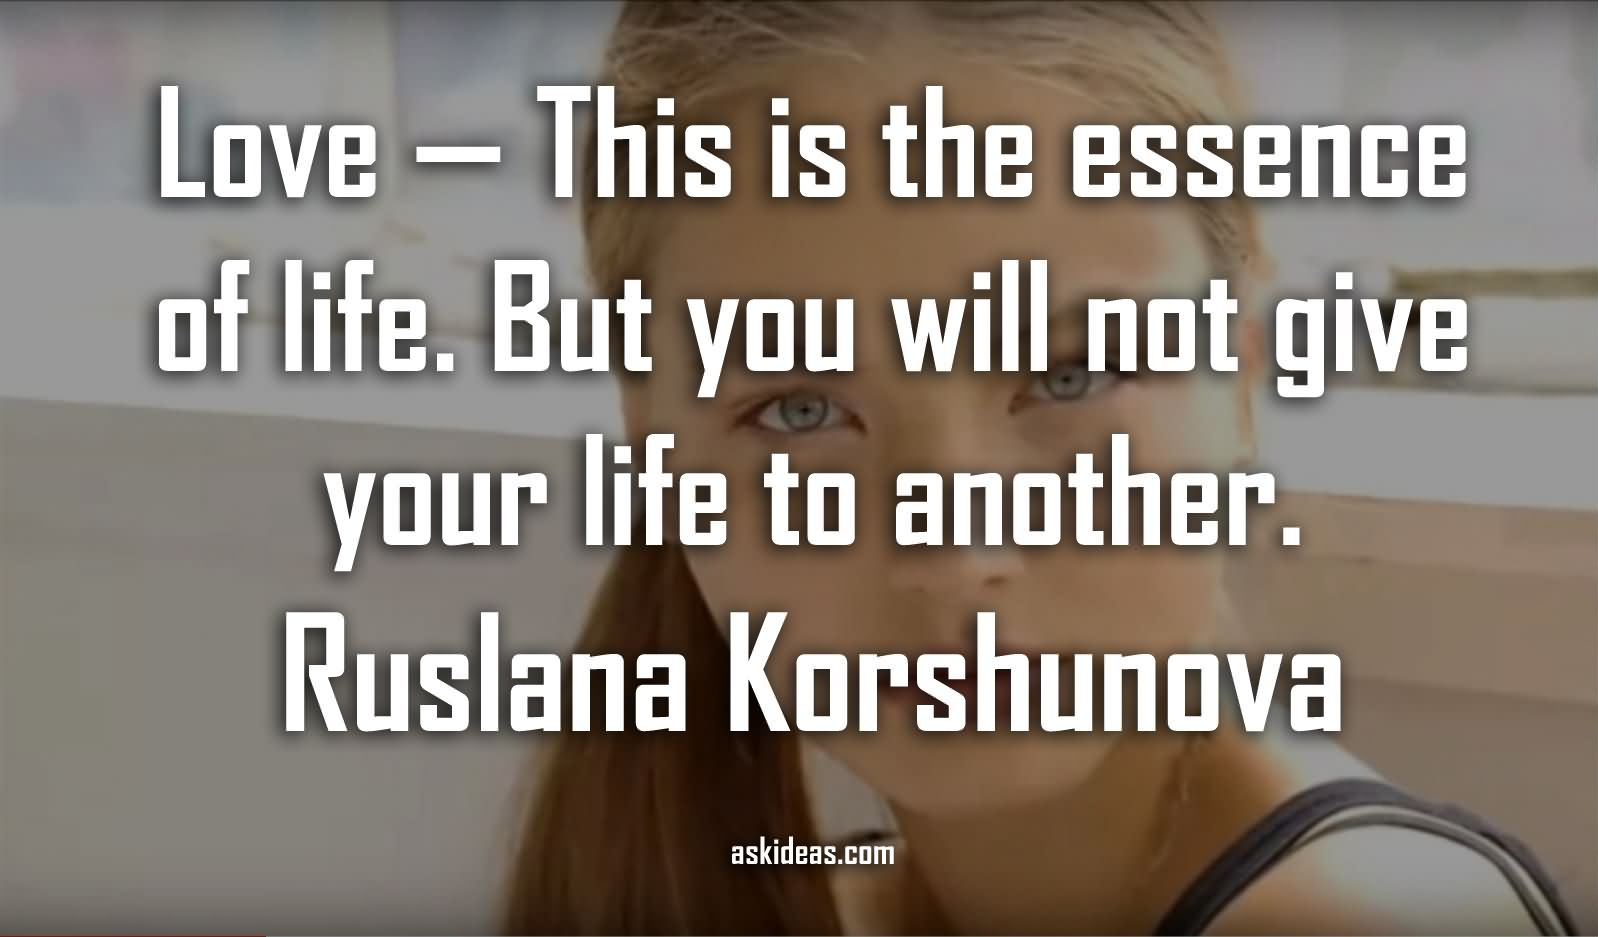 Love — this is the essence of life. But you will not give your life to another.